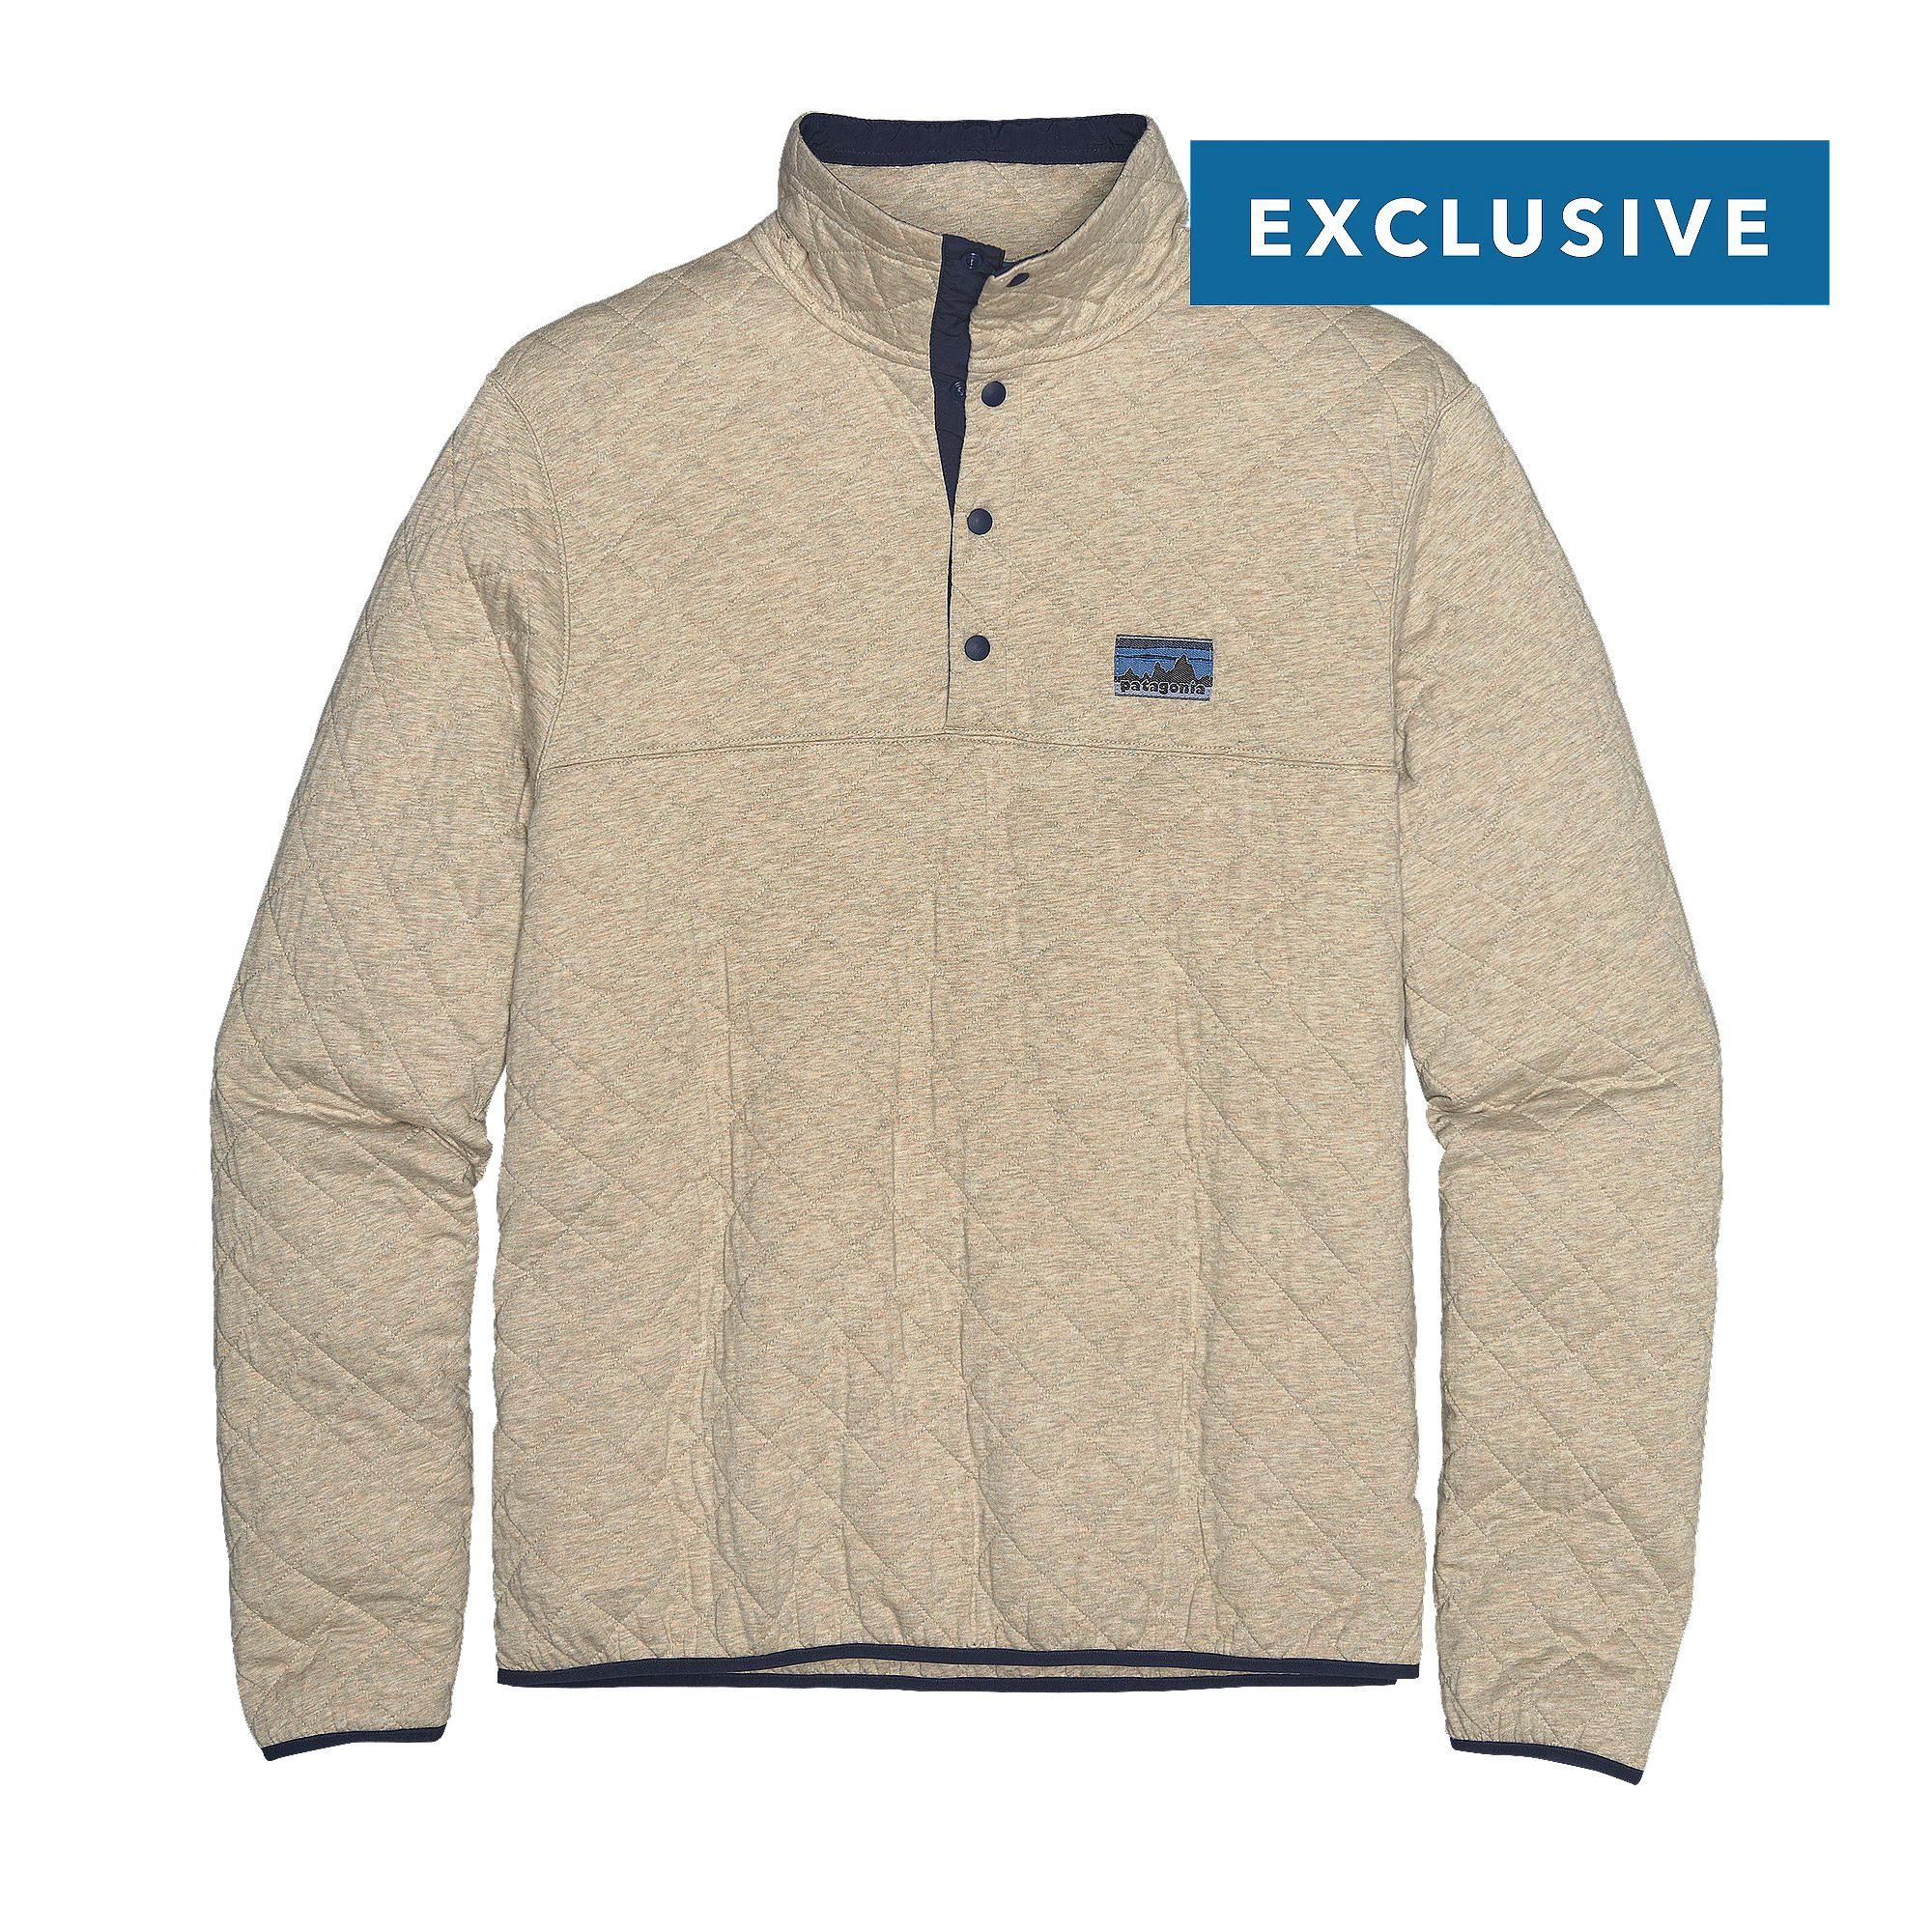 Our anniversary Patagonia Men's Diamond Quilt Snap-T® Pullover is made of  soft organic cotton for everyday layering warmth.